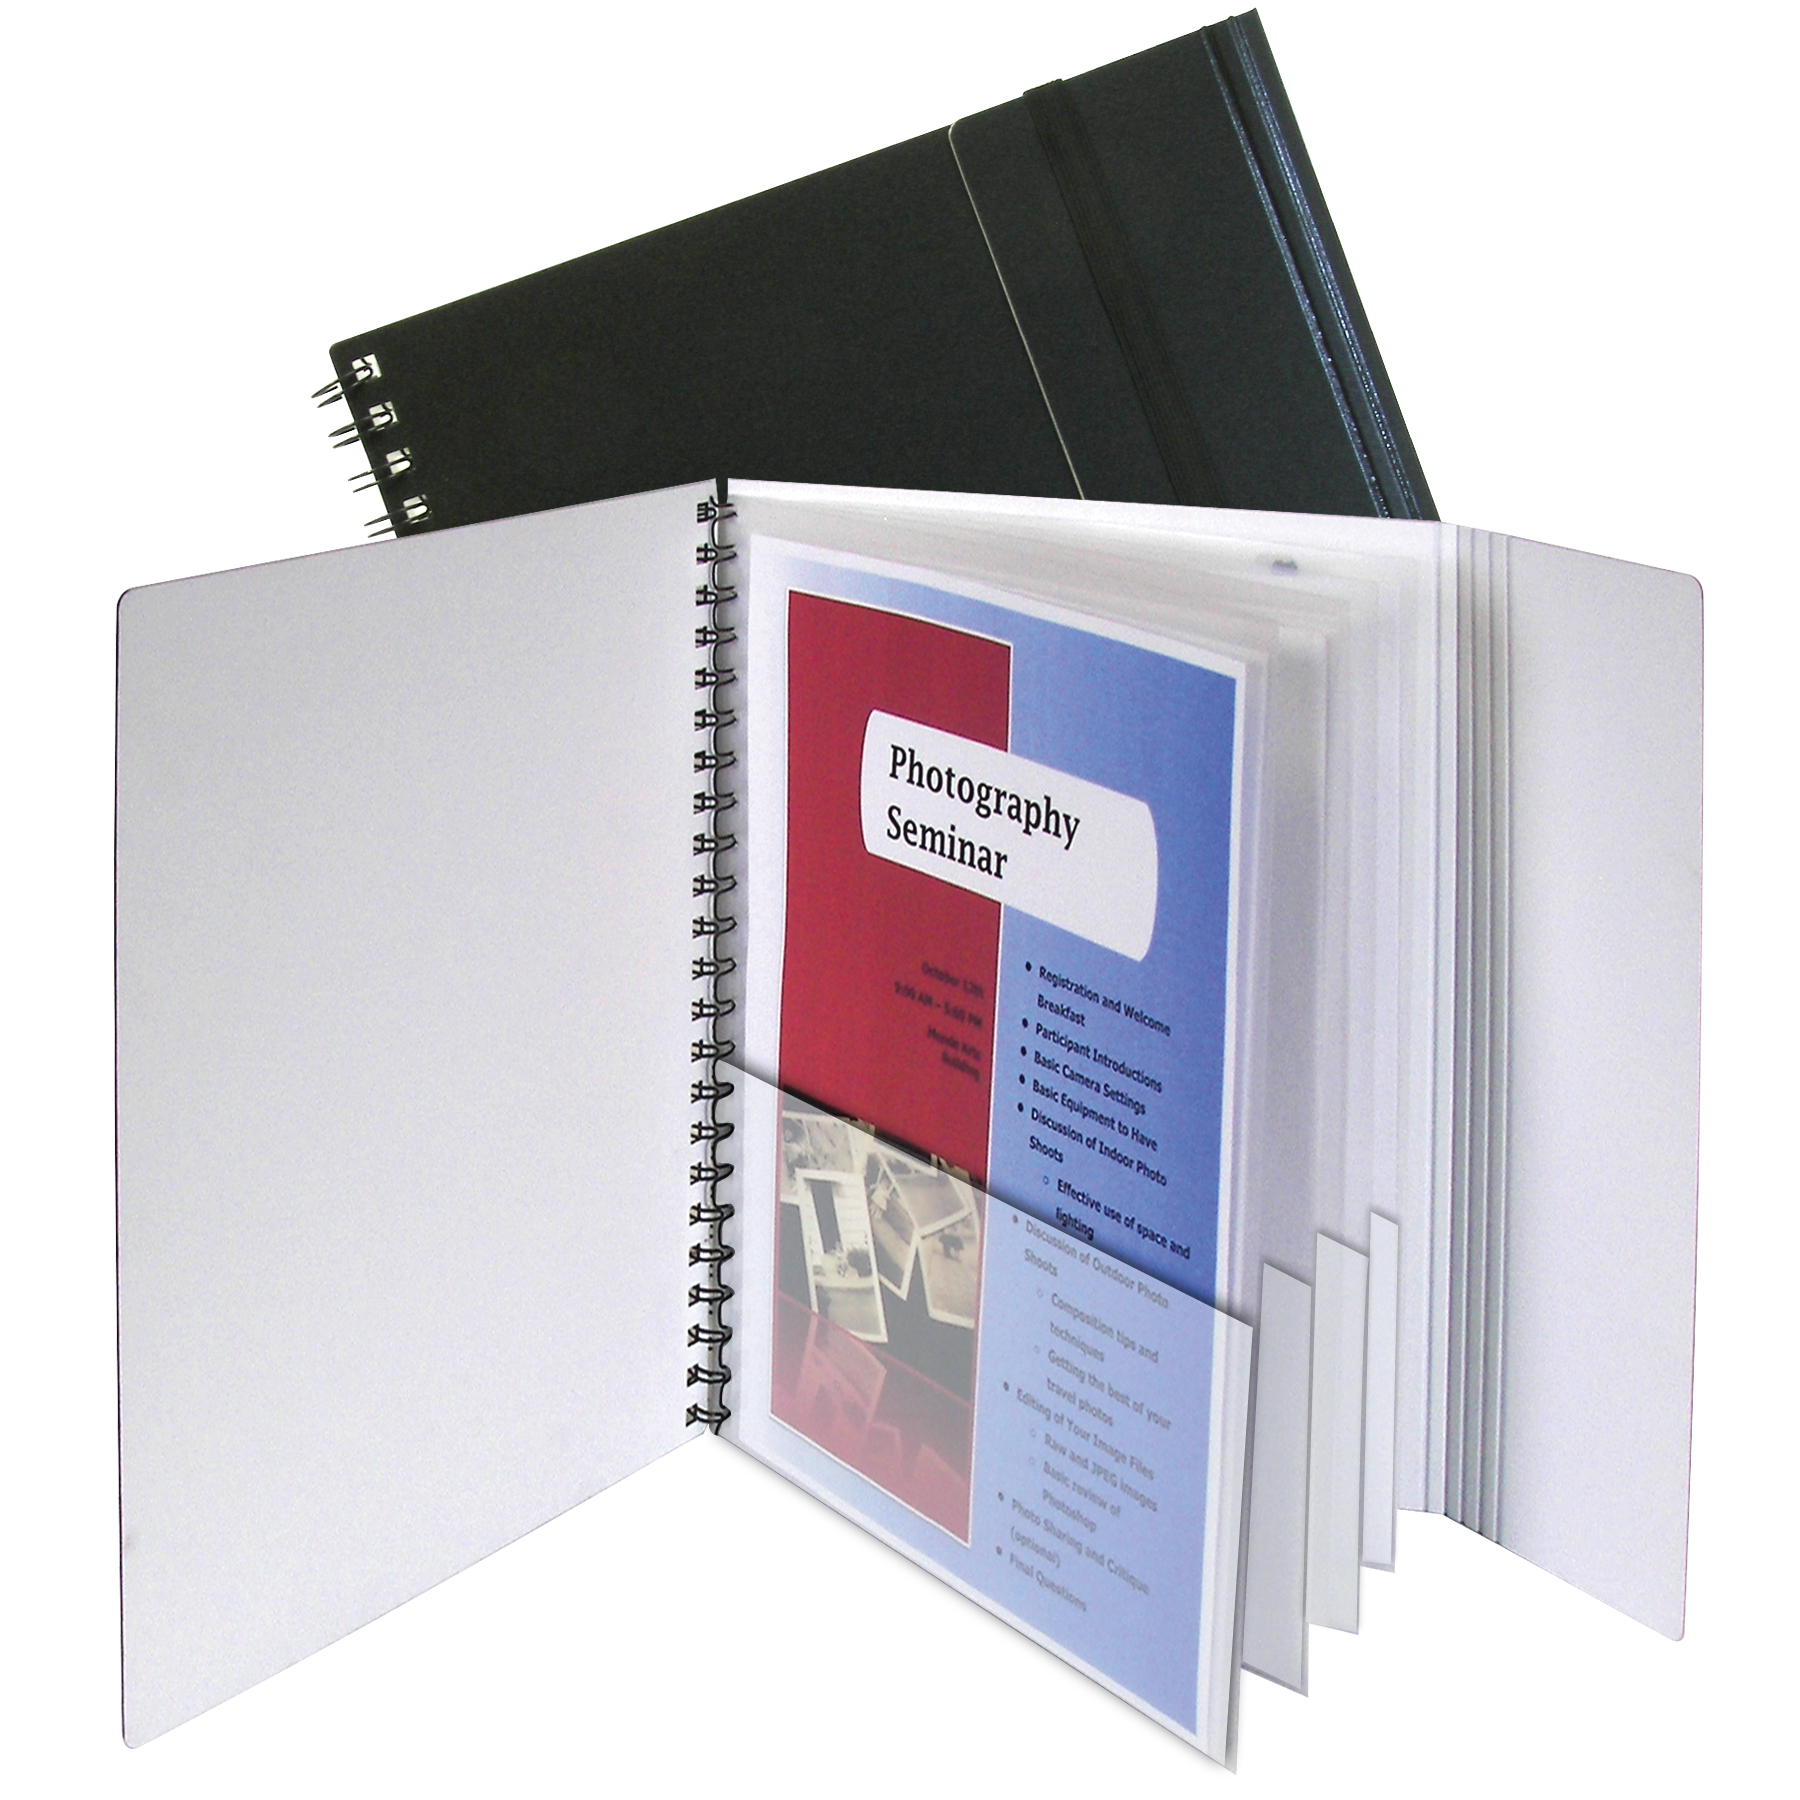 C-Line Products 8-Pocket Portfolio with Security Flap, Black/White